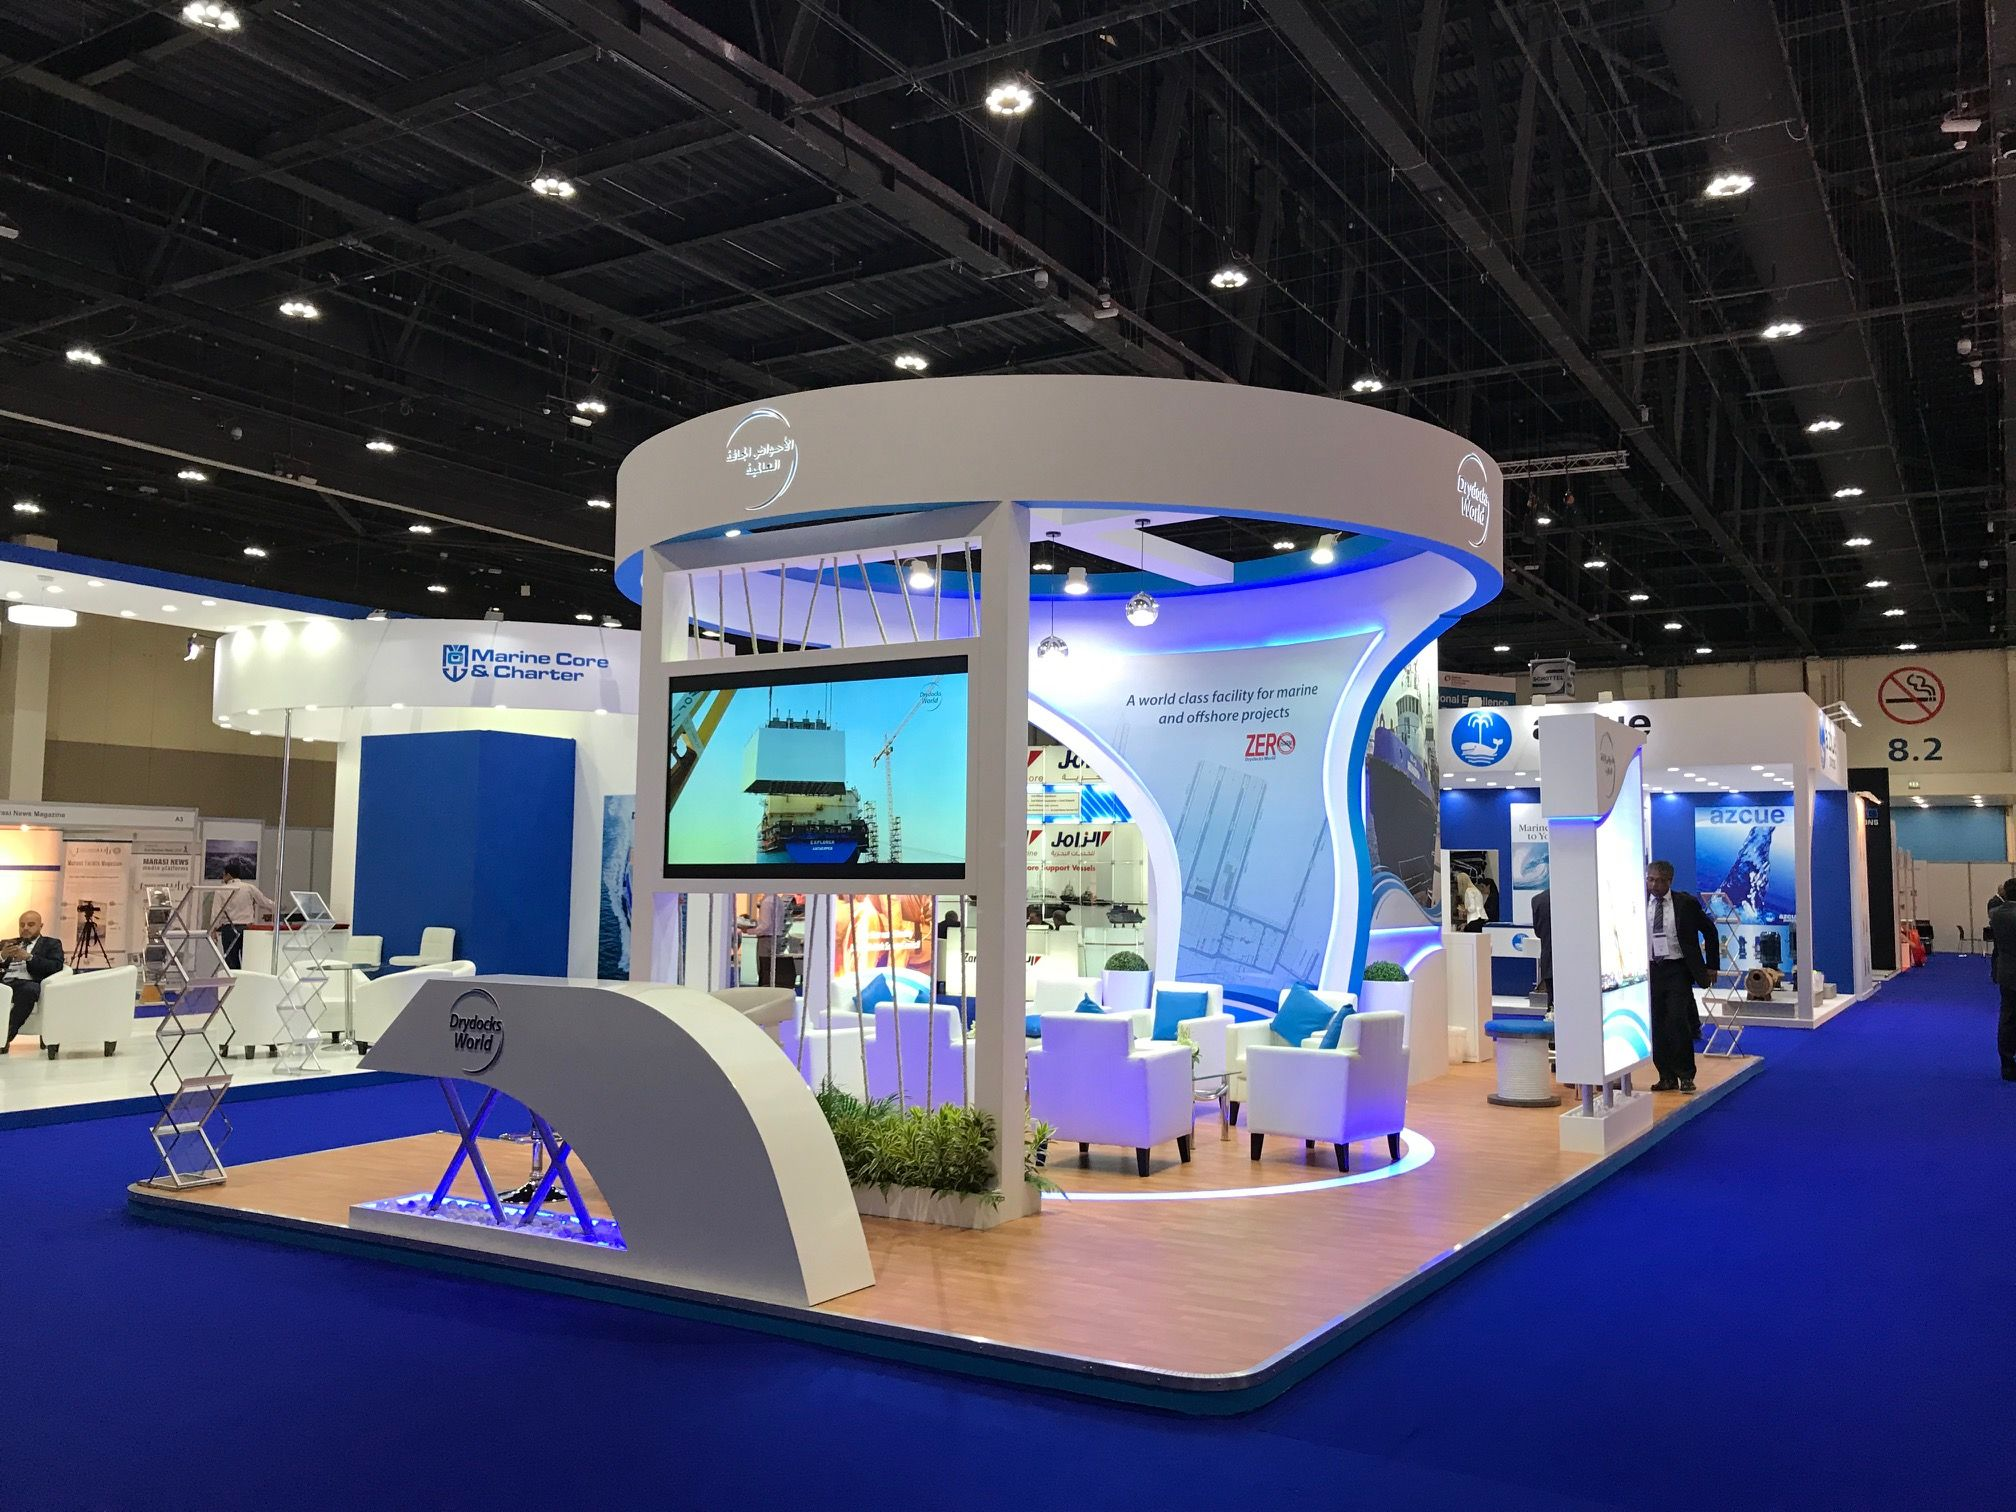 Expo Stands Shape Of You : Standdesign design exhibition stands ☆ exhibit